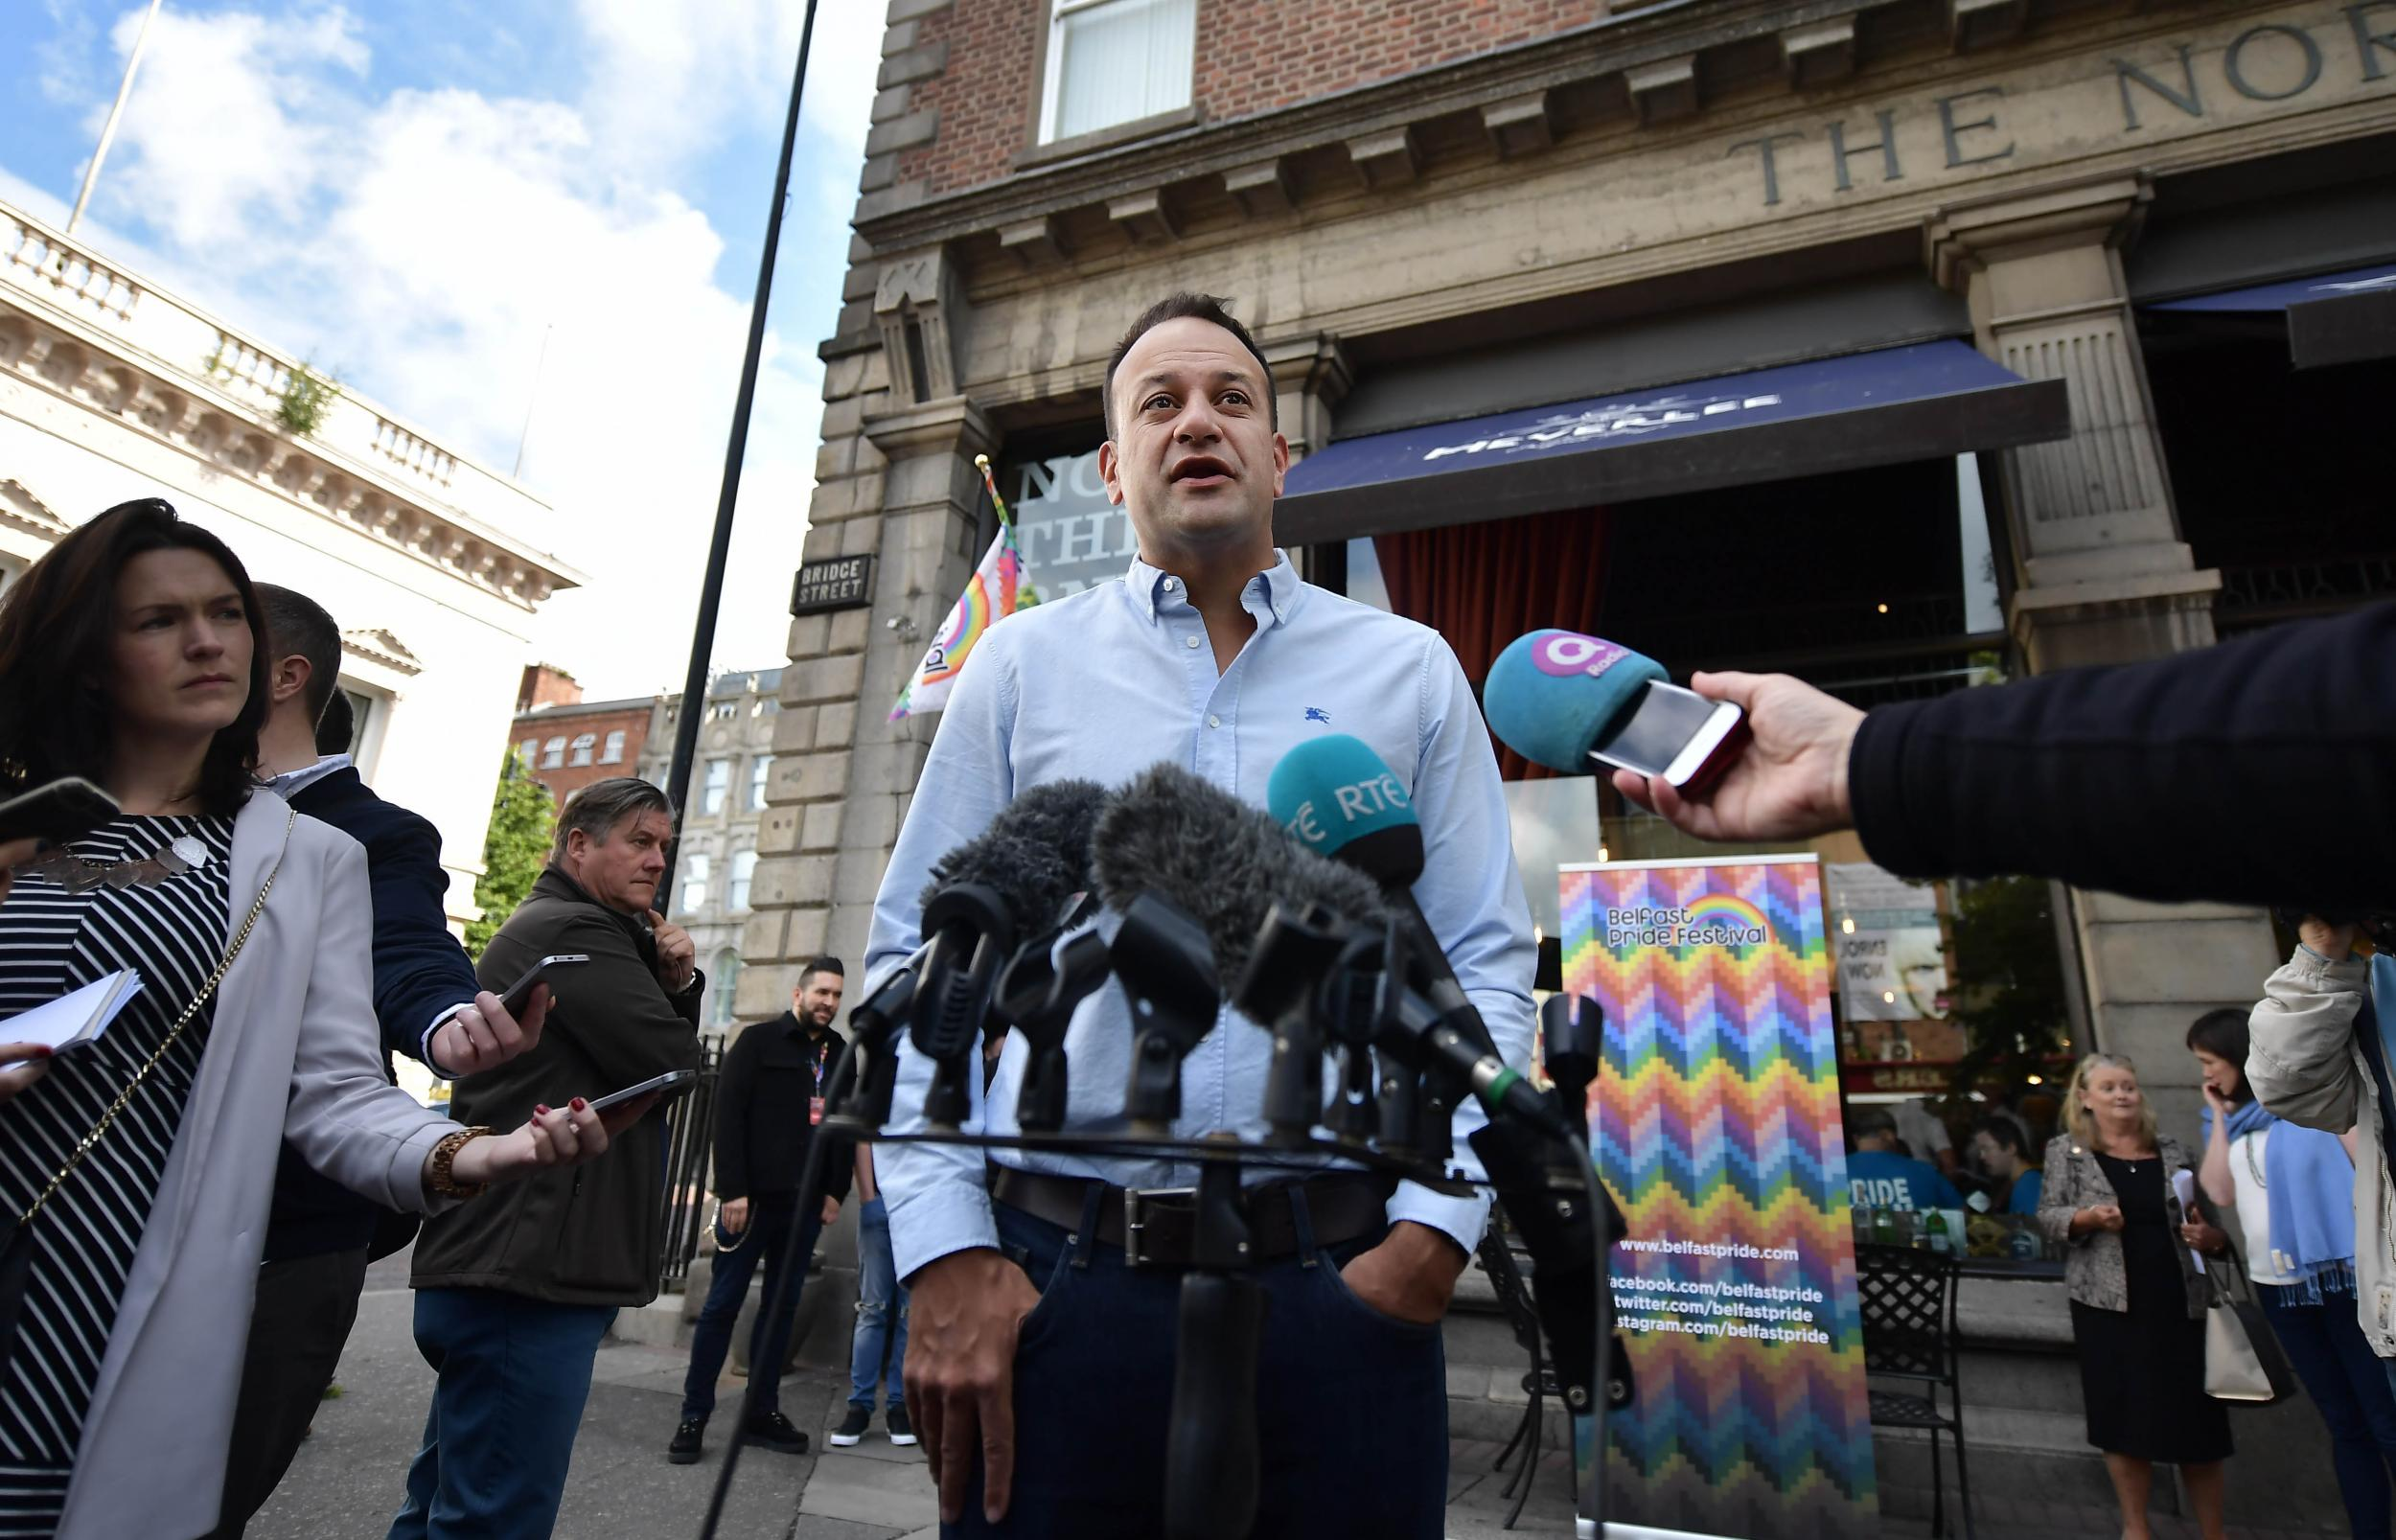 Same-sex marriage in Northern Ireland is 'only matter of time', says Irish PM Leo Varadkar | The Independent